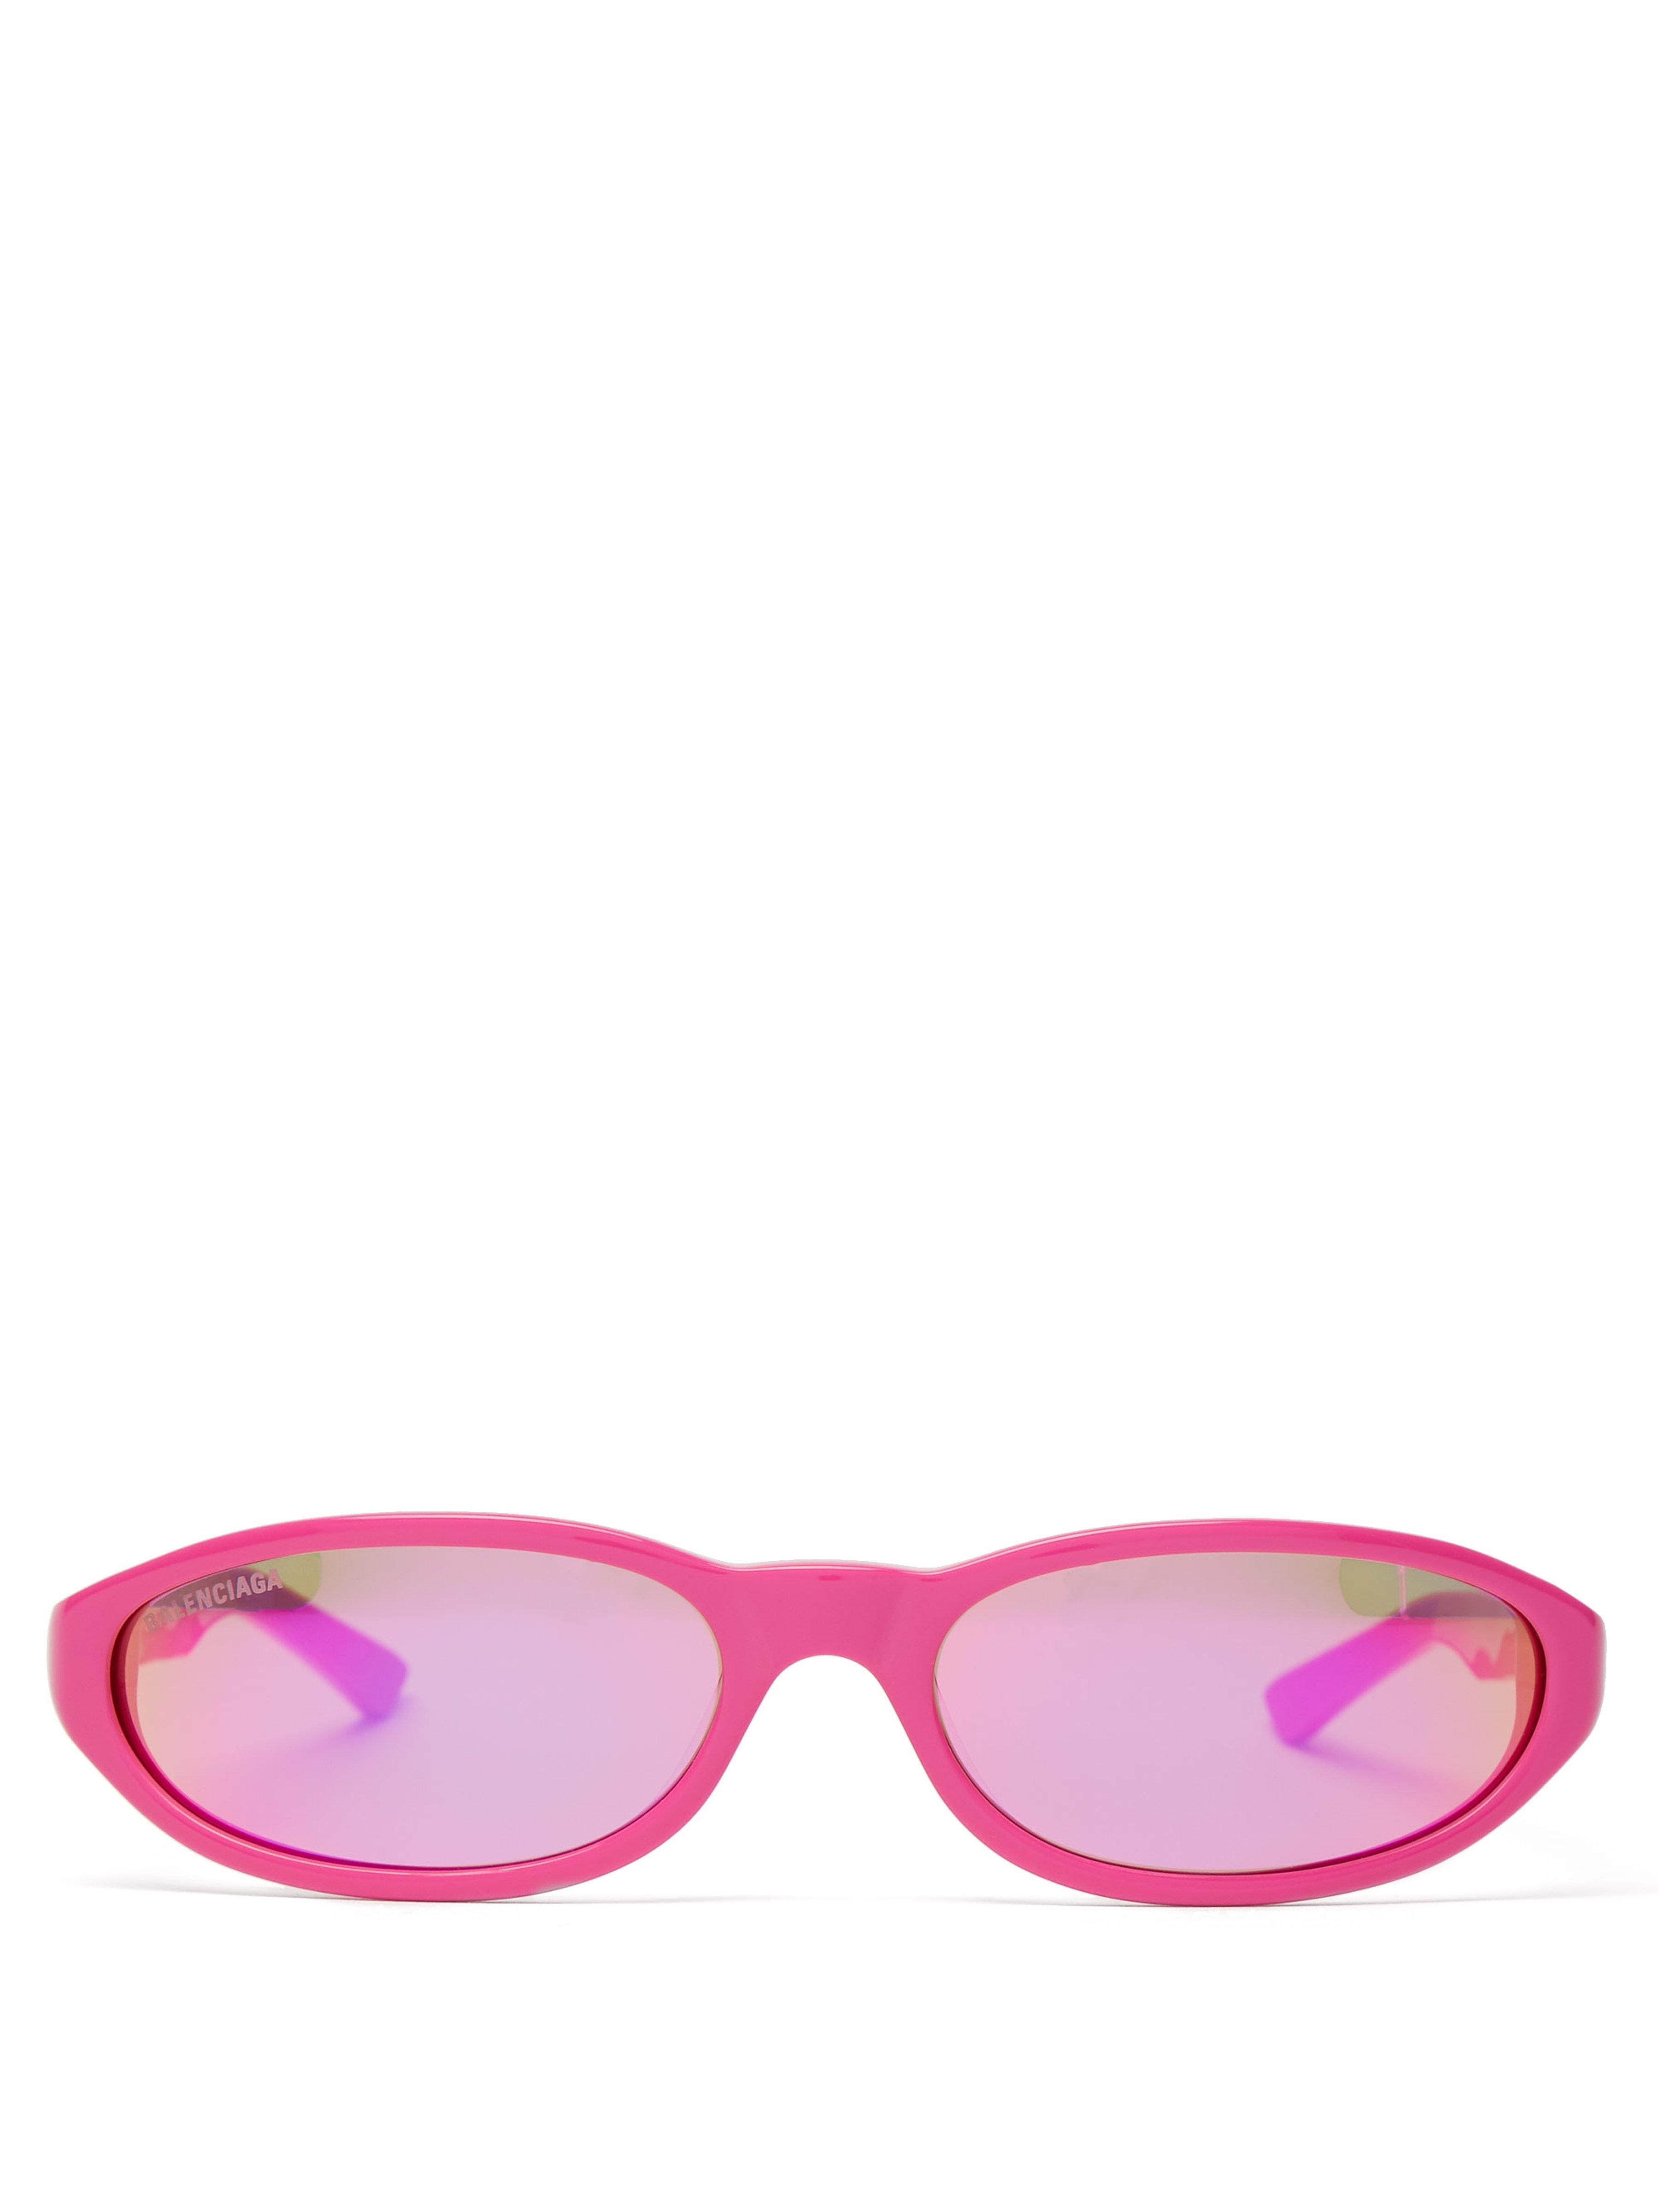 e45da72718 Balenciaga Neo Oval Frame Acetate Sunglasses in Pink for Men - Lyst